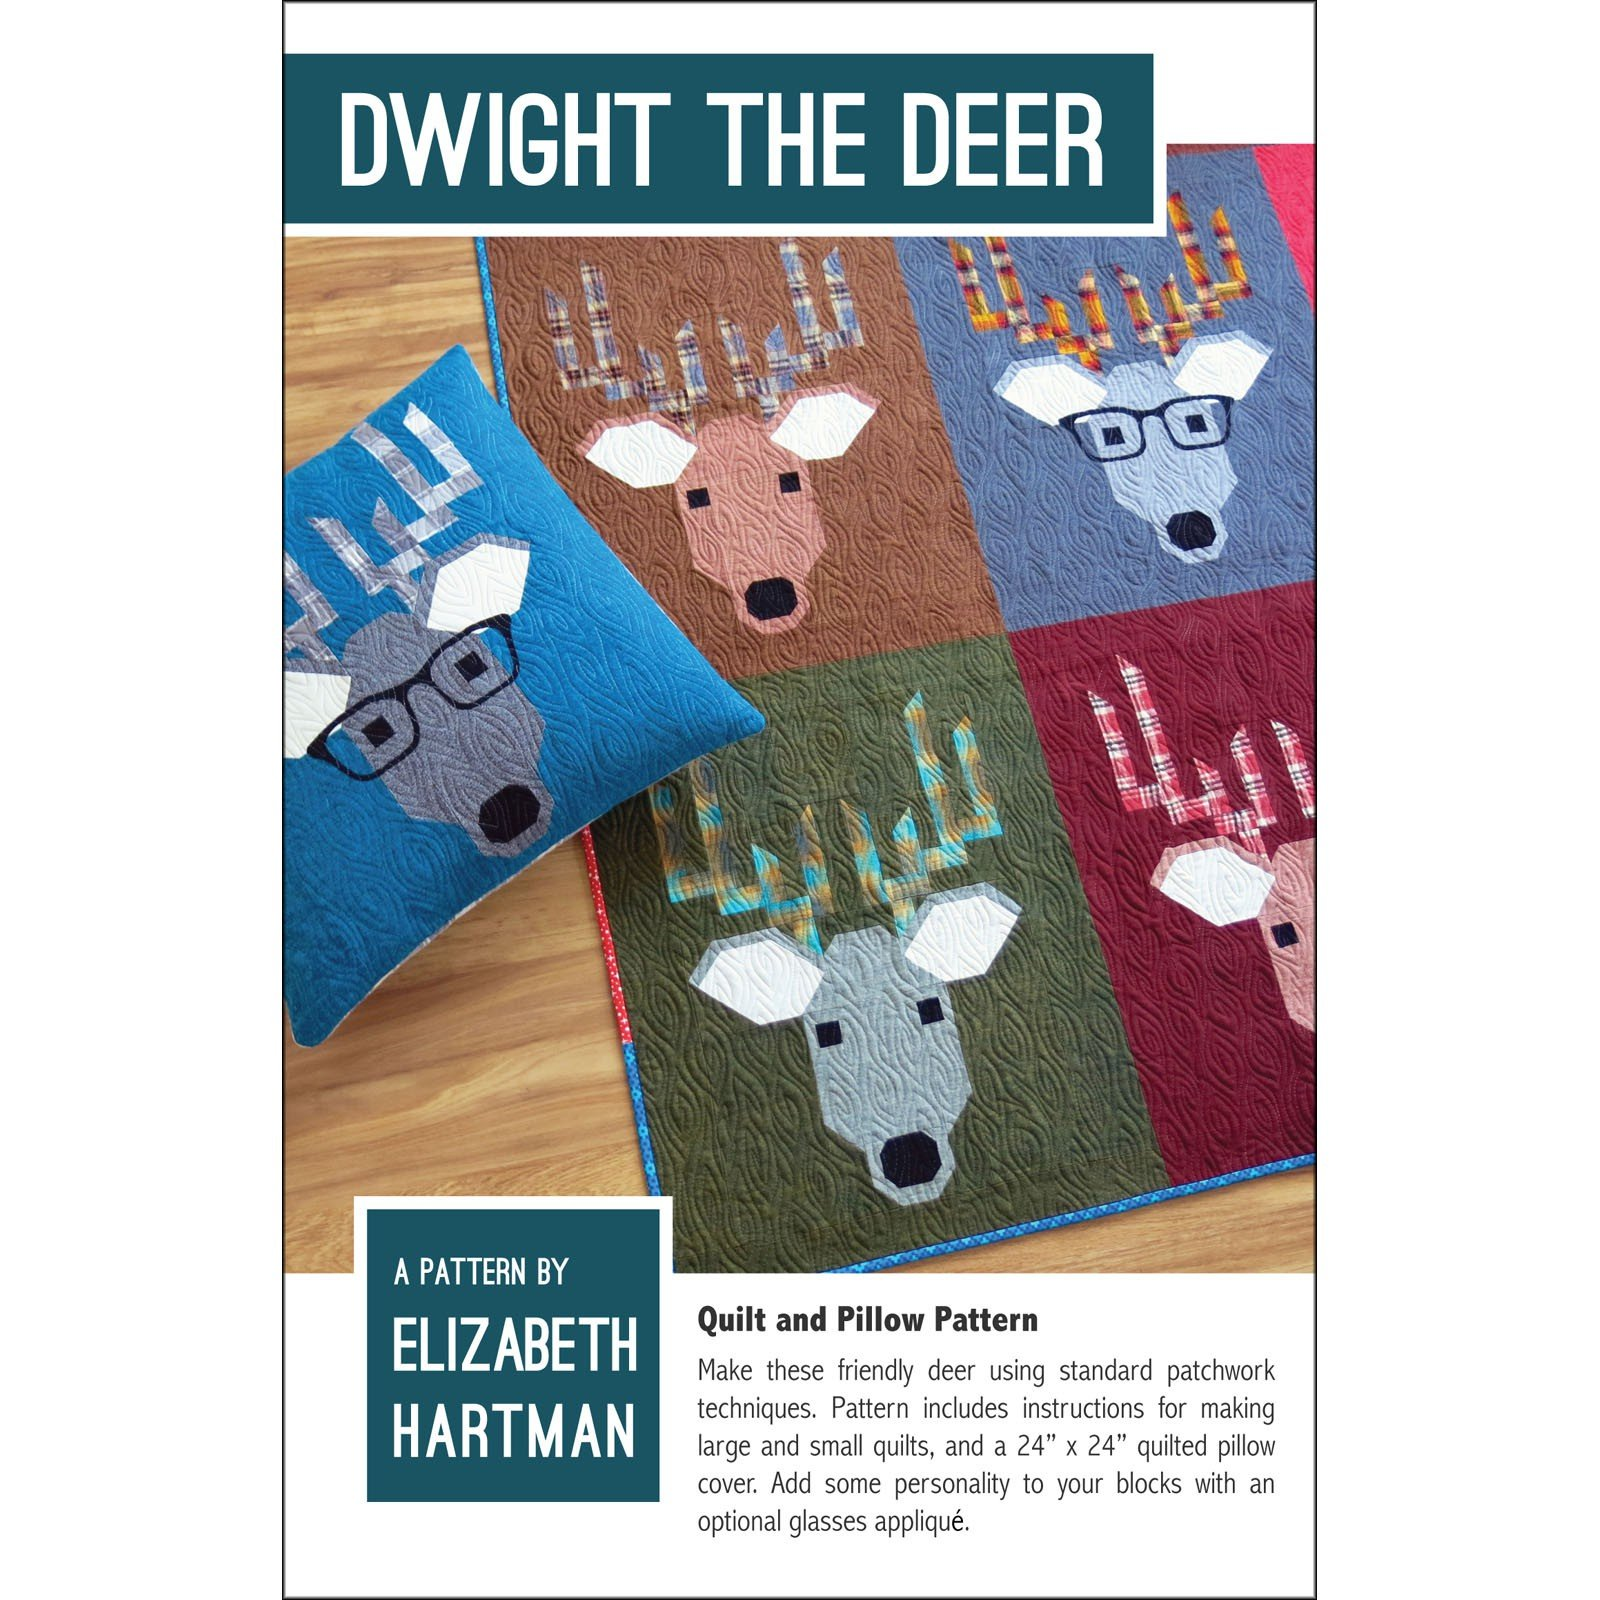 Dwight the Deer Quilt and Pattern by Elizabeth Hartman